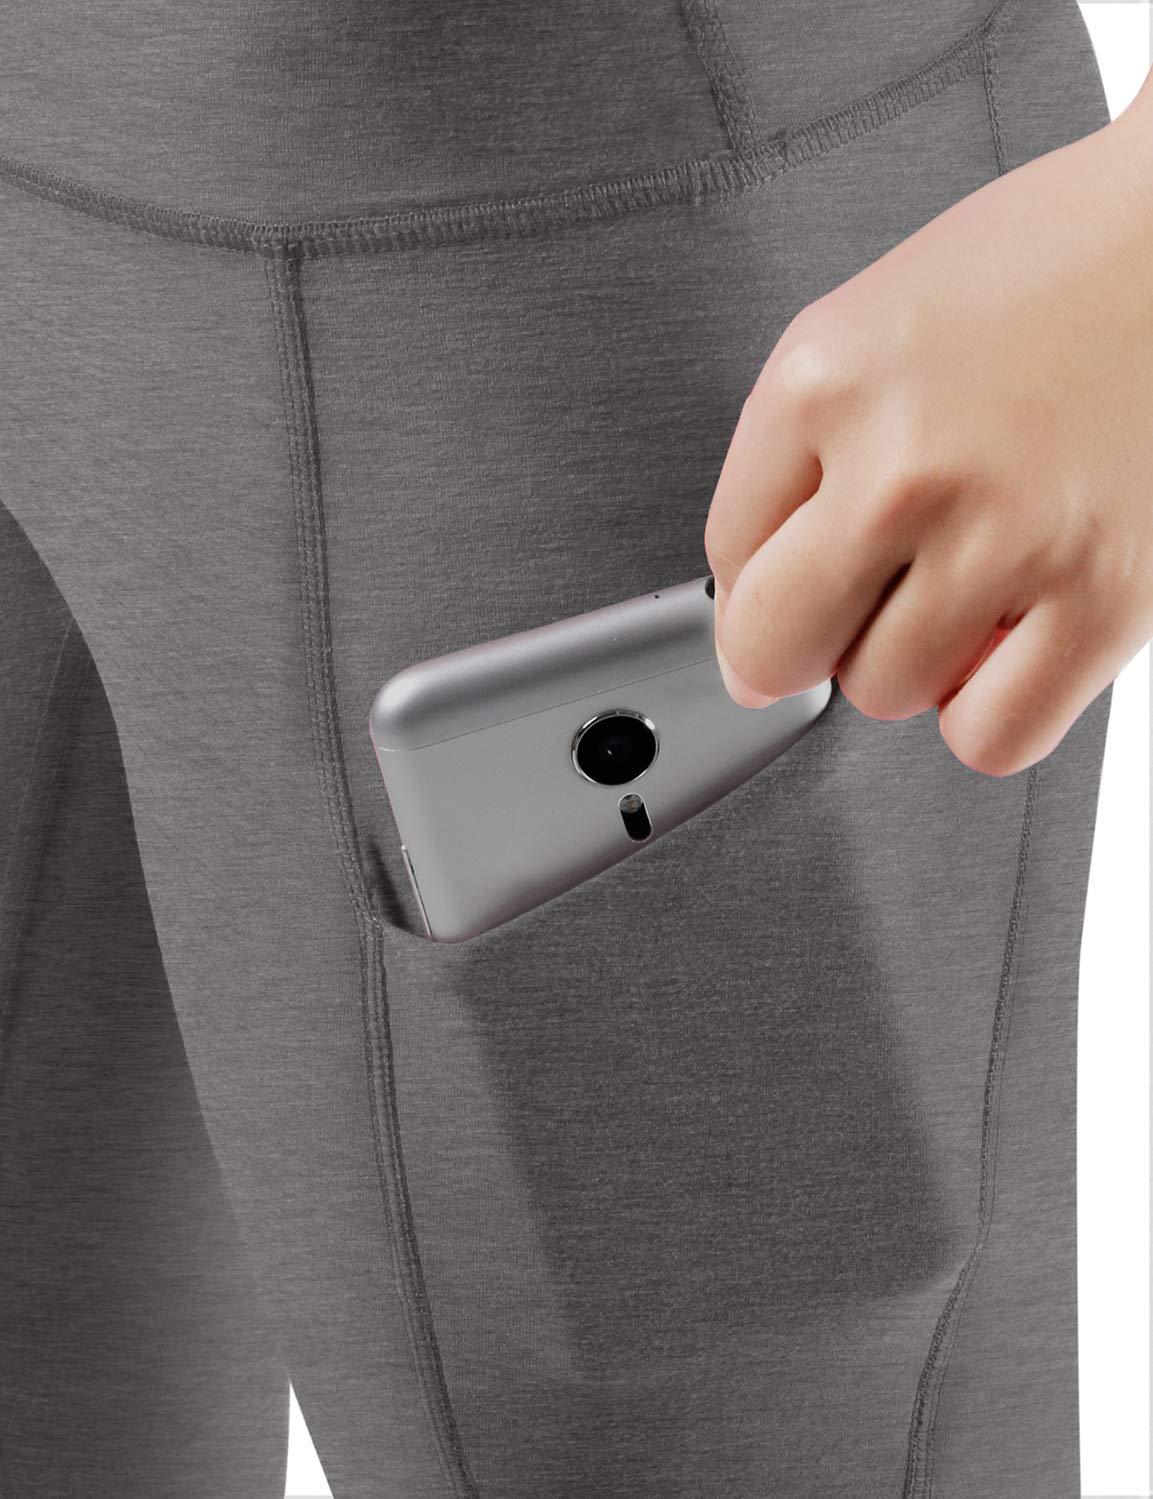 ODODOS High Waist Out Pocket Yoga Capris Pants Tummy Control Workout Running 4 Way Stretch Yoga Leggings,Gray,X-Small by ODODOS (Image #4)